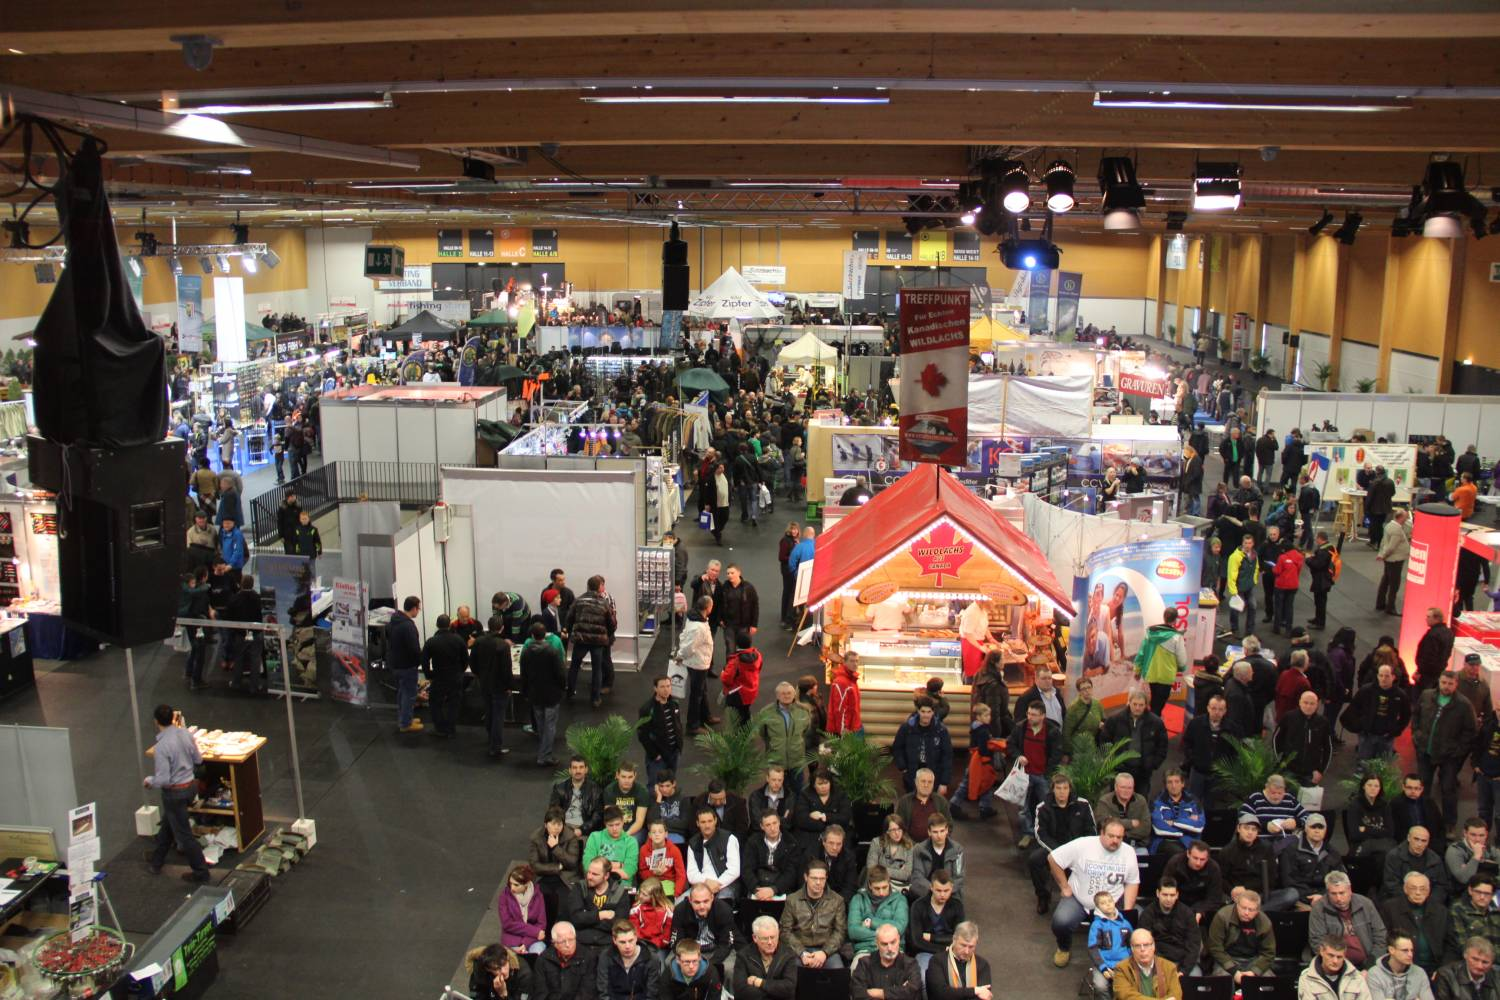 Catch the Fisch am Fishing Festival in Wels